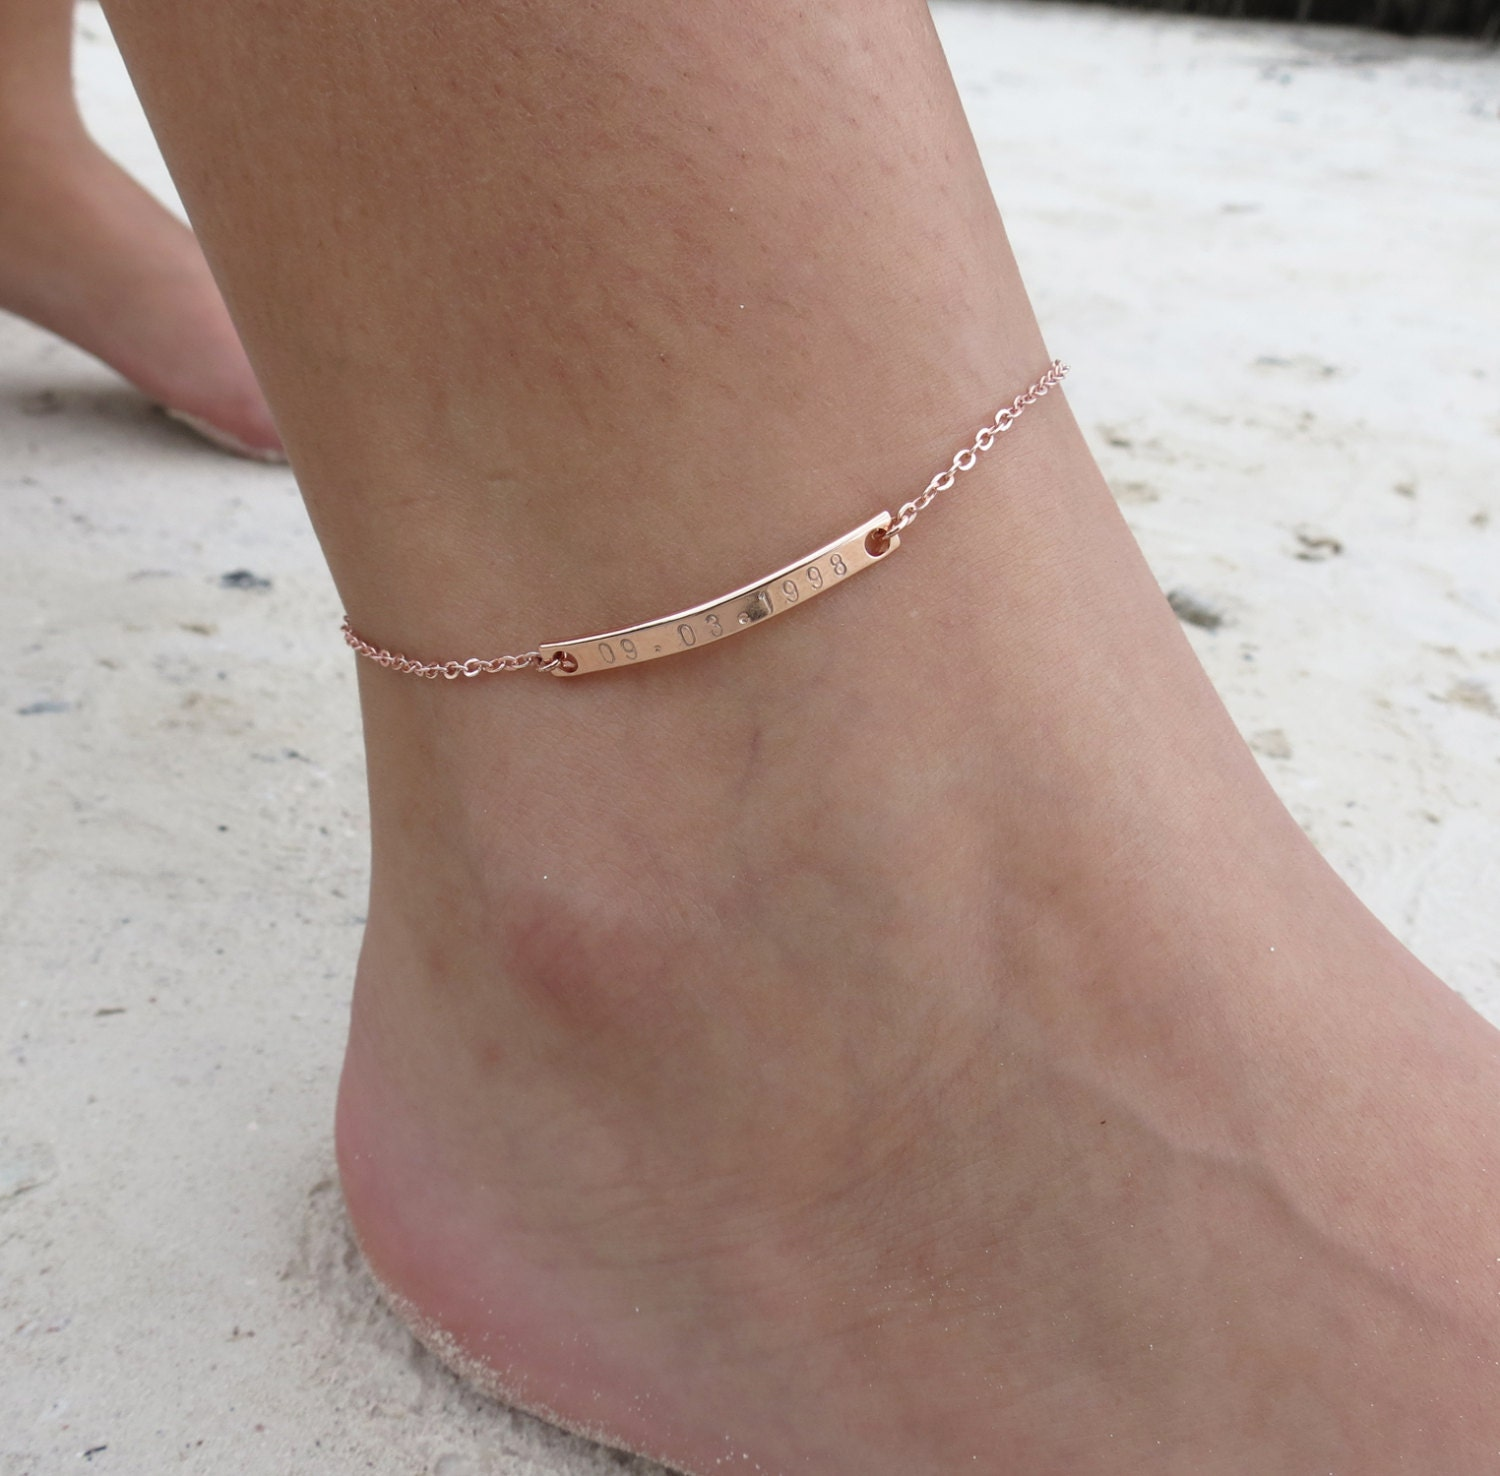 bracelet listing love zoom little version a tiny anklet charms gold ankle bracelets il with heart fullxfull